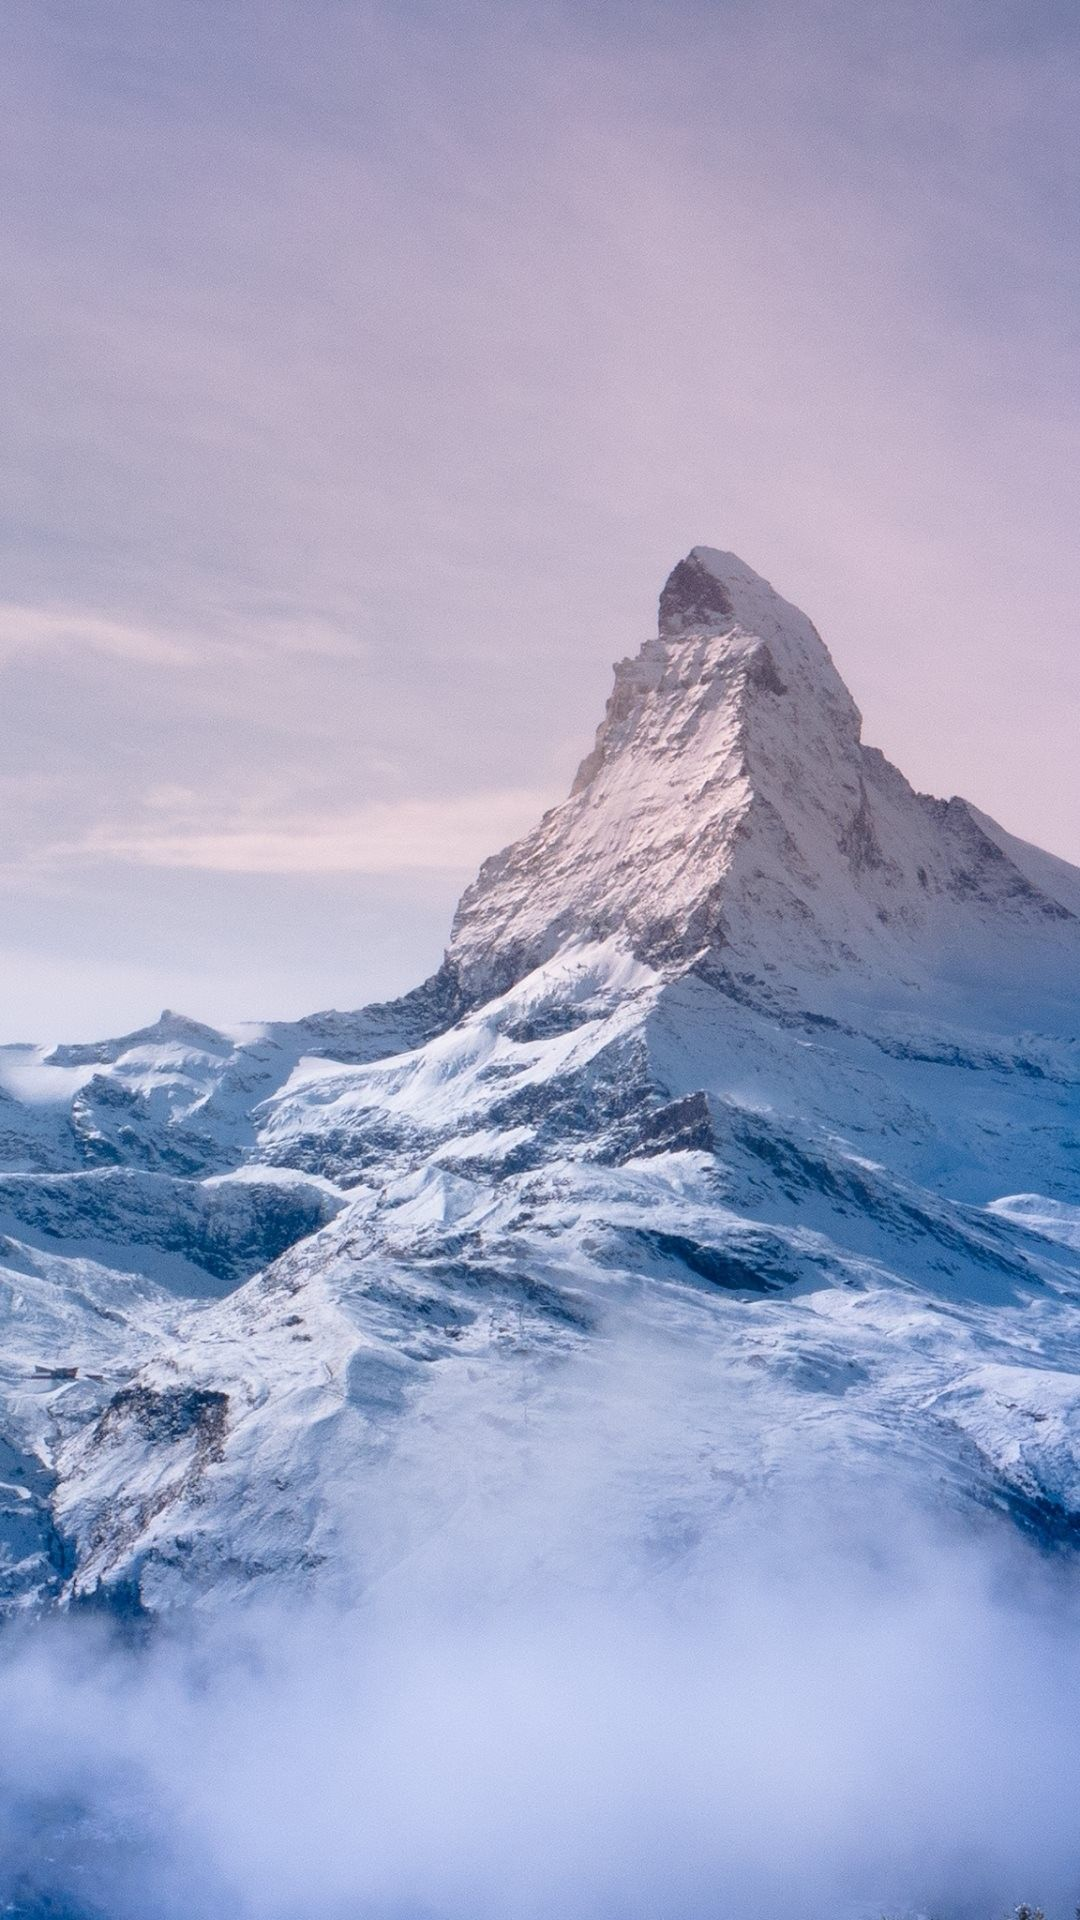 Everest Mountain Wallpapers Top Free Everest Mountain Backgrounds Wallpaperaccess